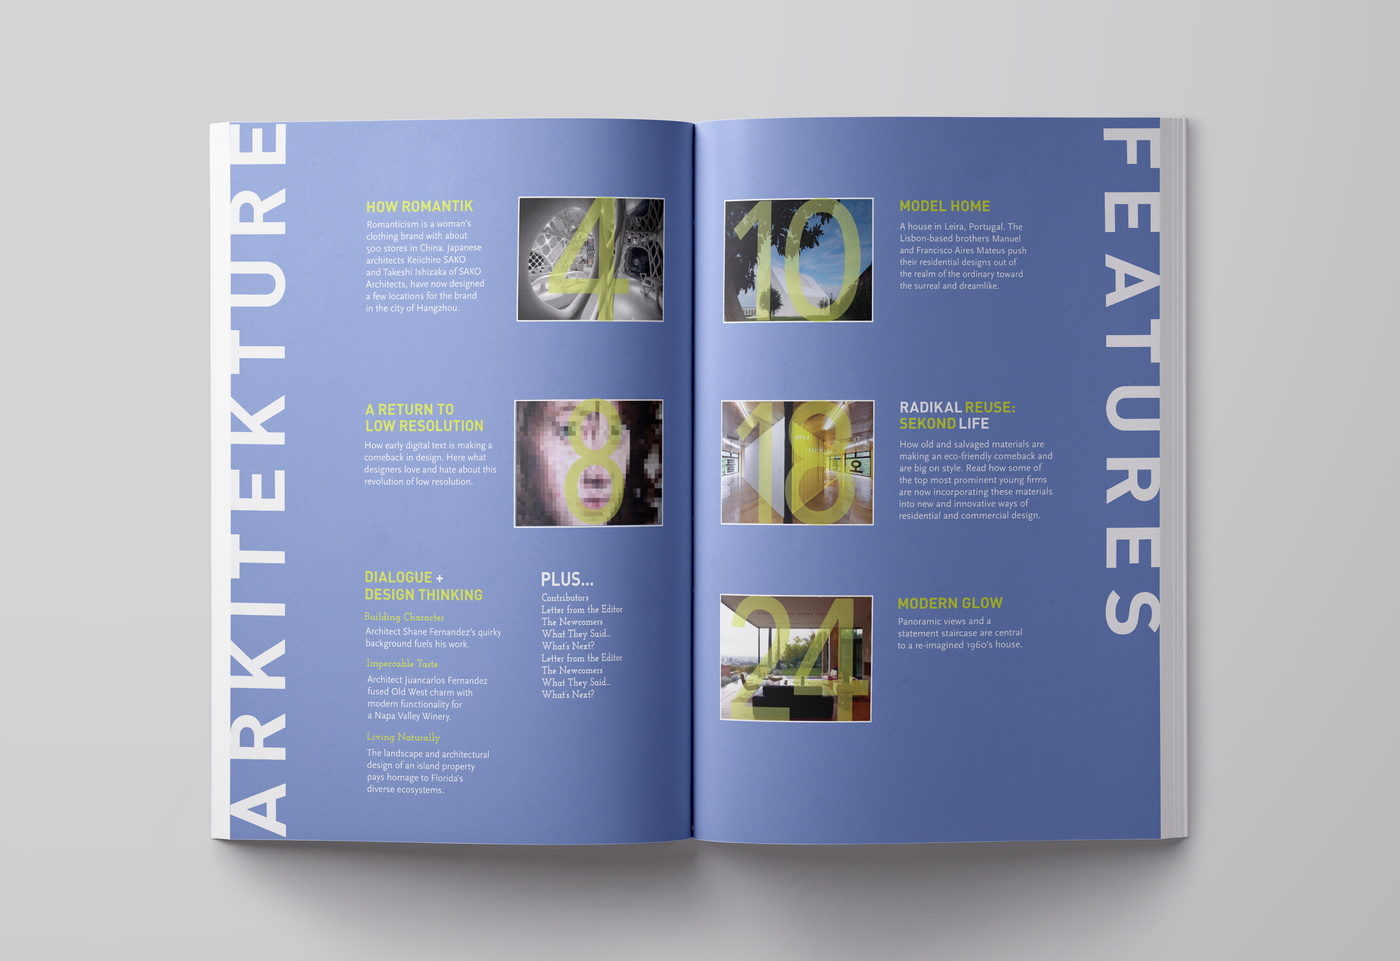 Architecture Magazine By Sharon Stout At Coroflot Com